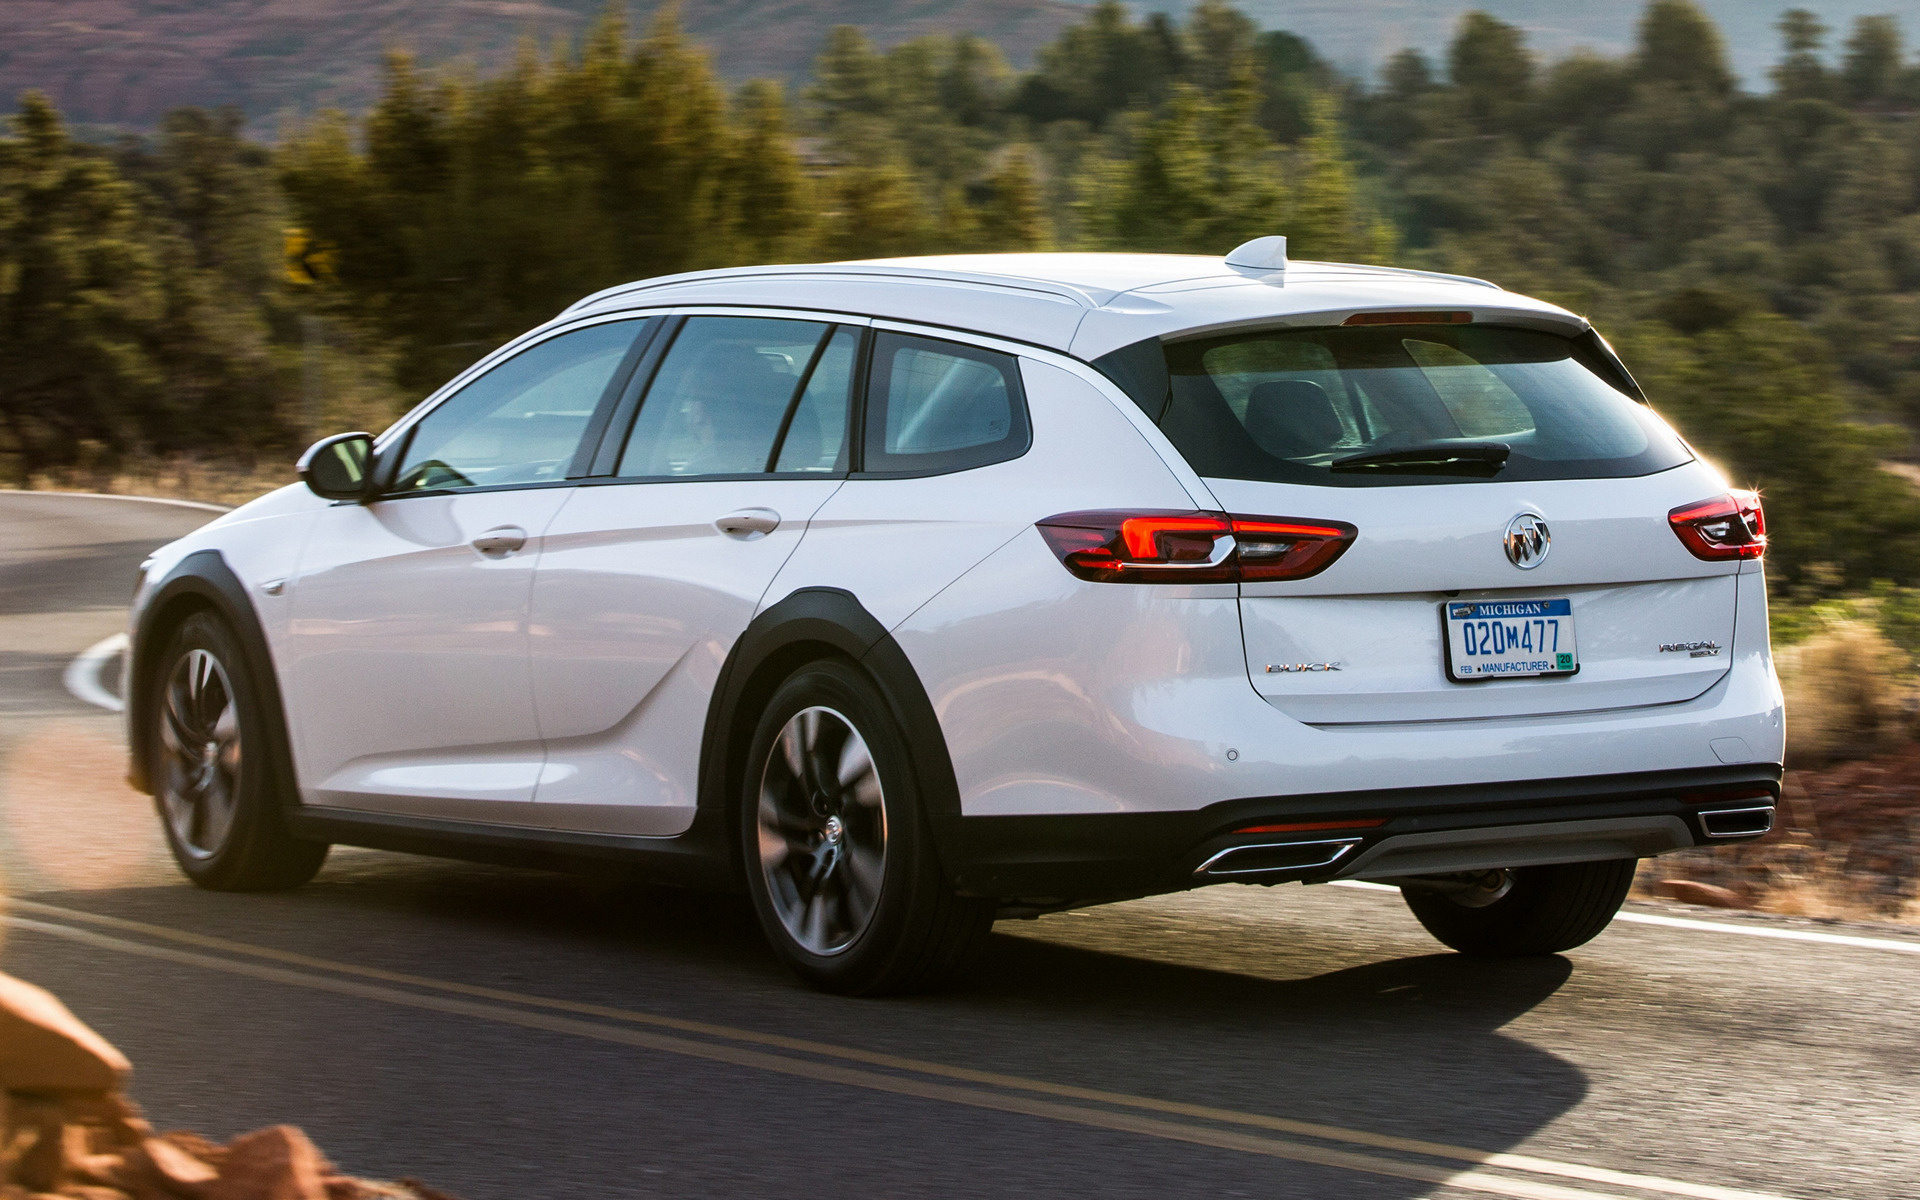 2018 Buick Regal TourX - Wallpapers and HD Images | Car Pixel